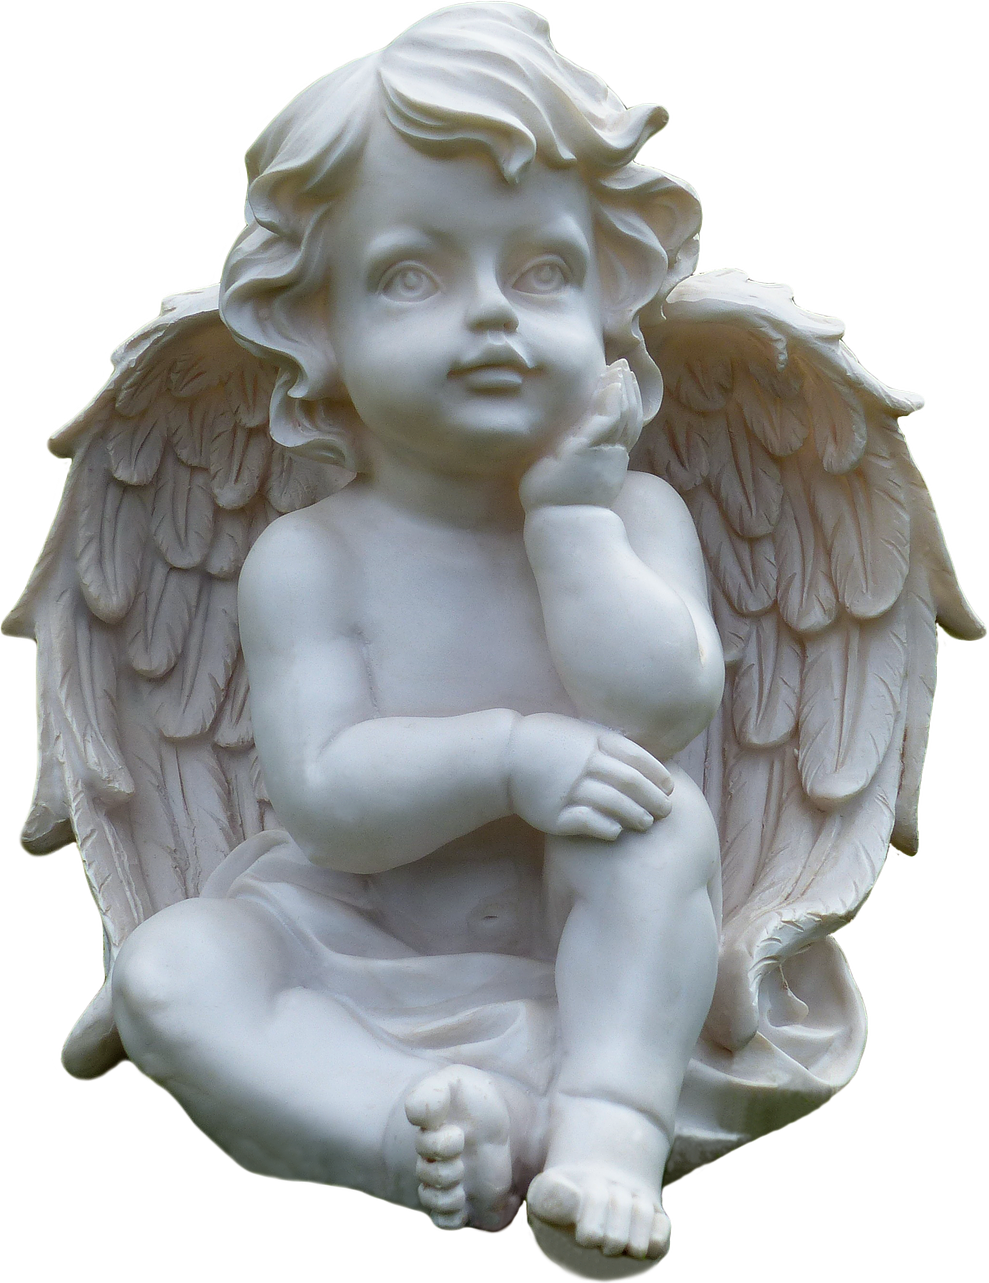 Cupid statue png. Thinking transparent image mix